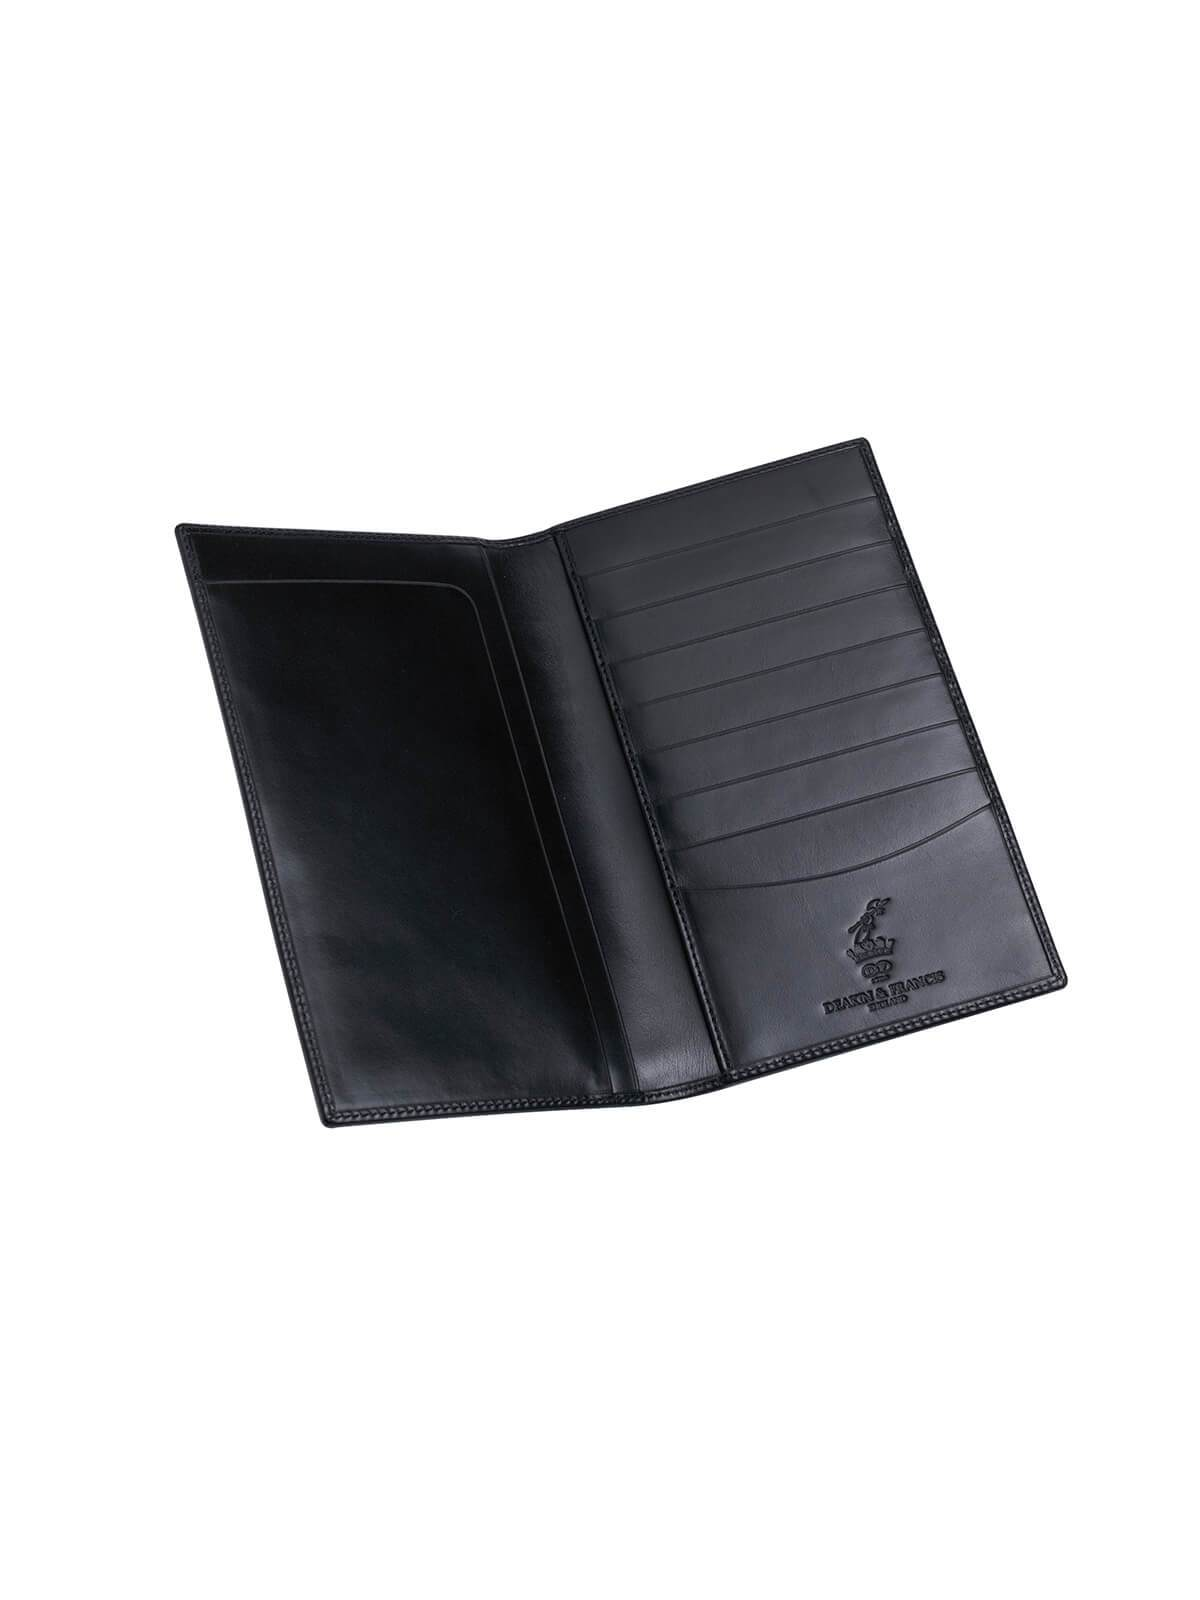 Deakin & Francis Black Leather Gents Chequebook Wallet G04160002